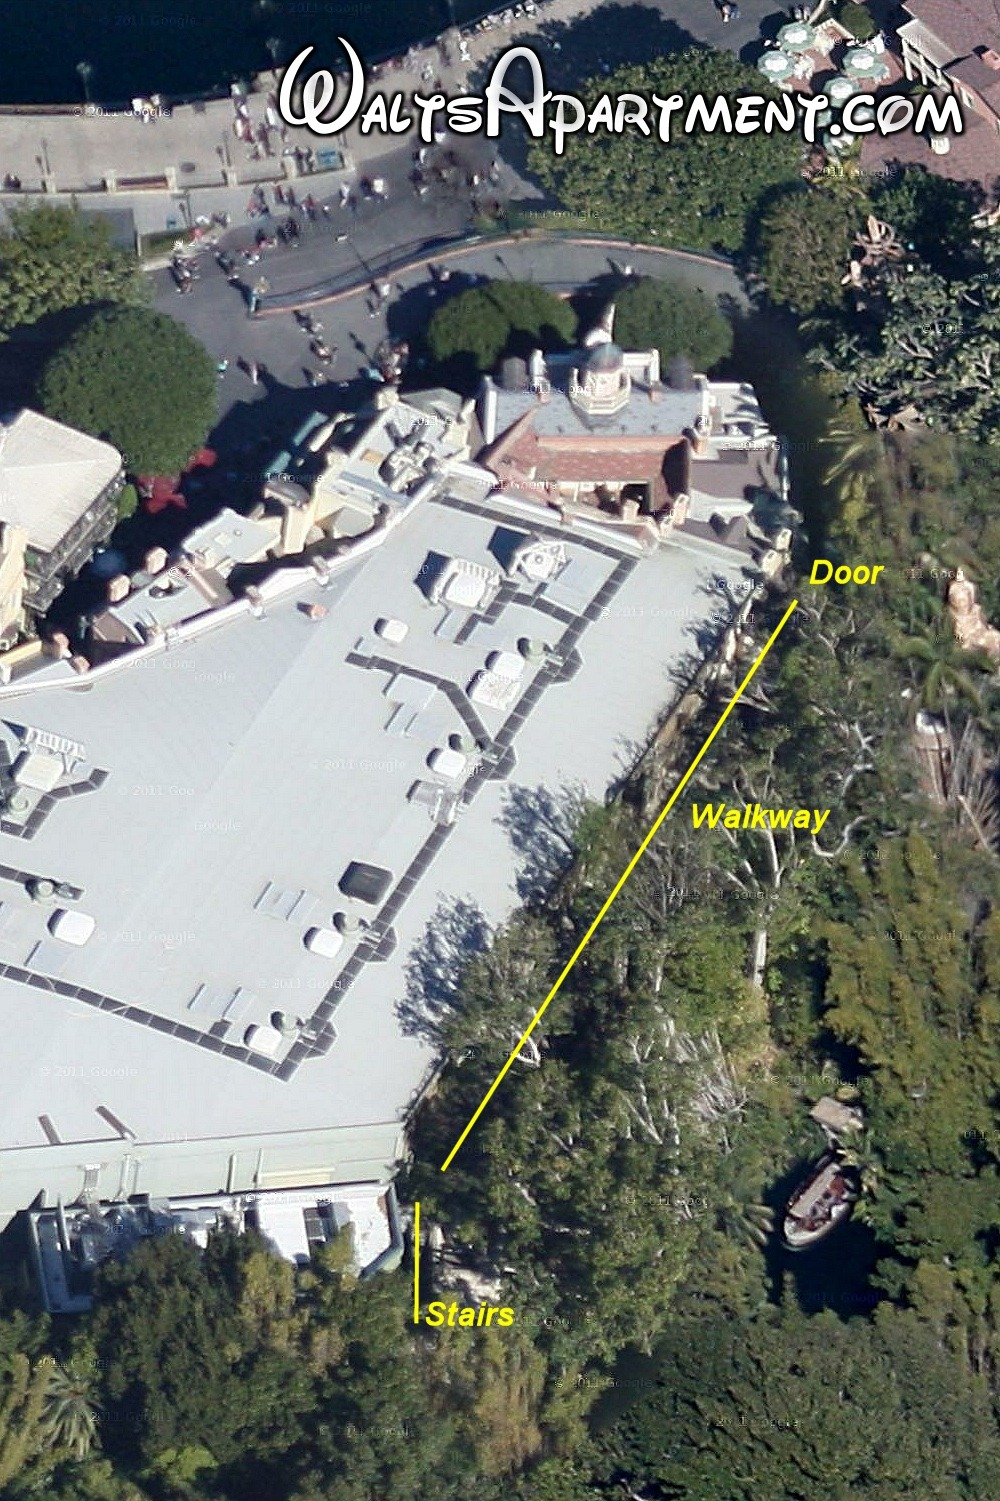 Aerial view of Walt Disney's luxury apartment | WaltsApartment.com